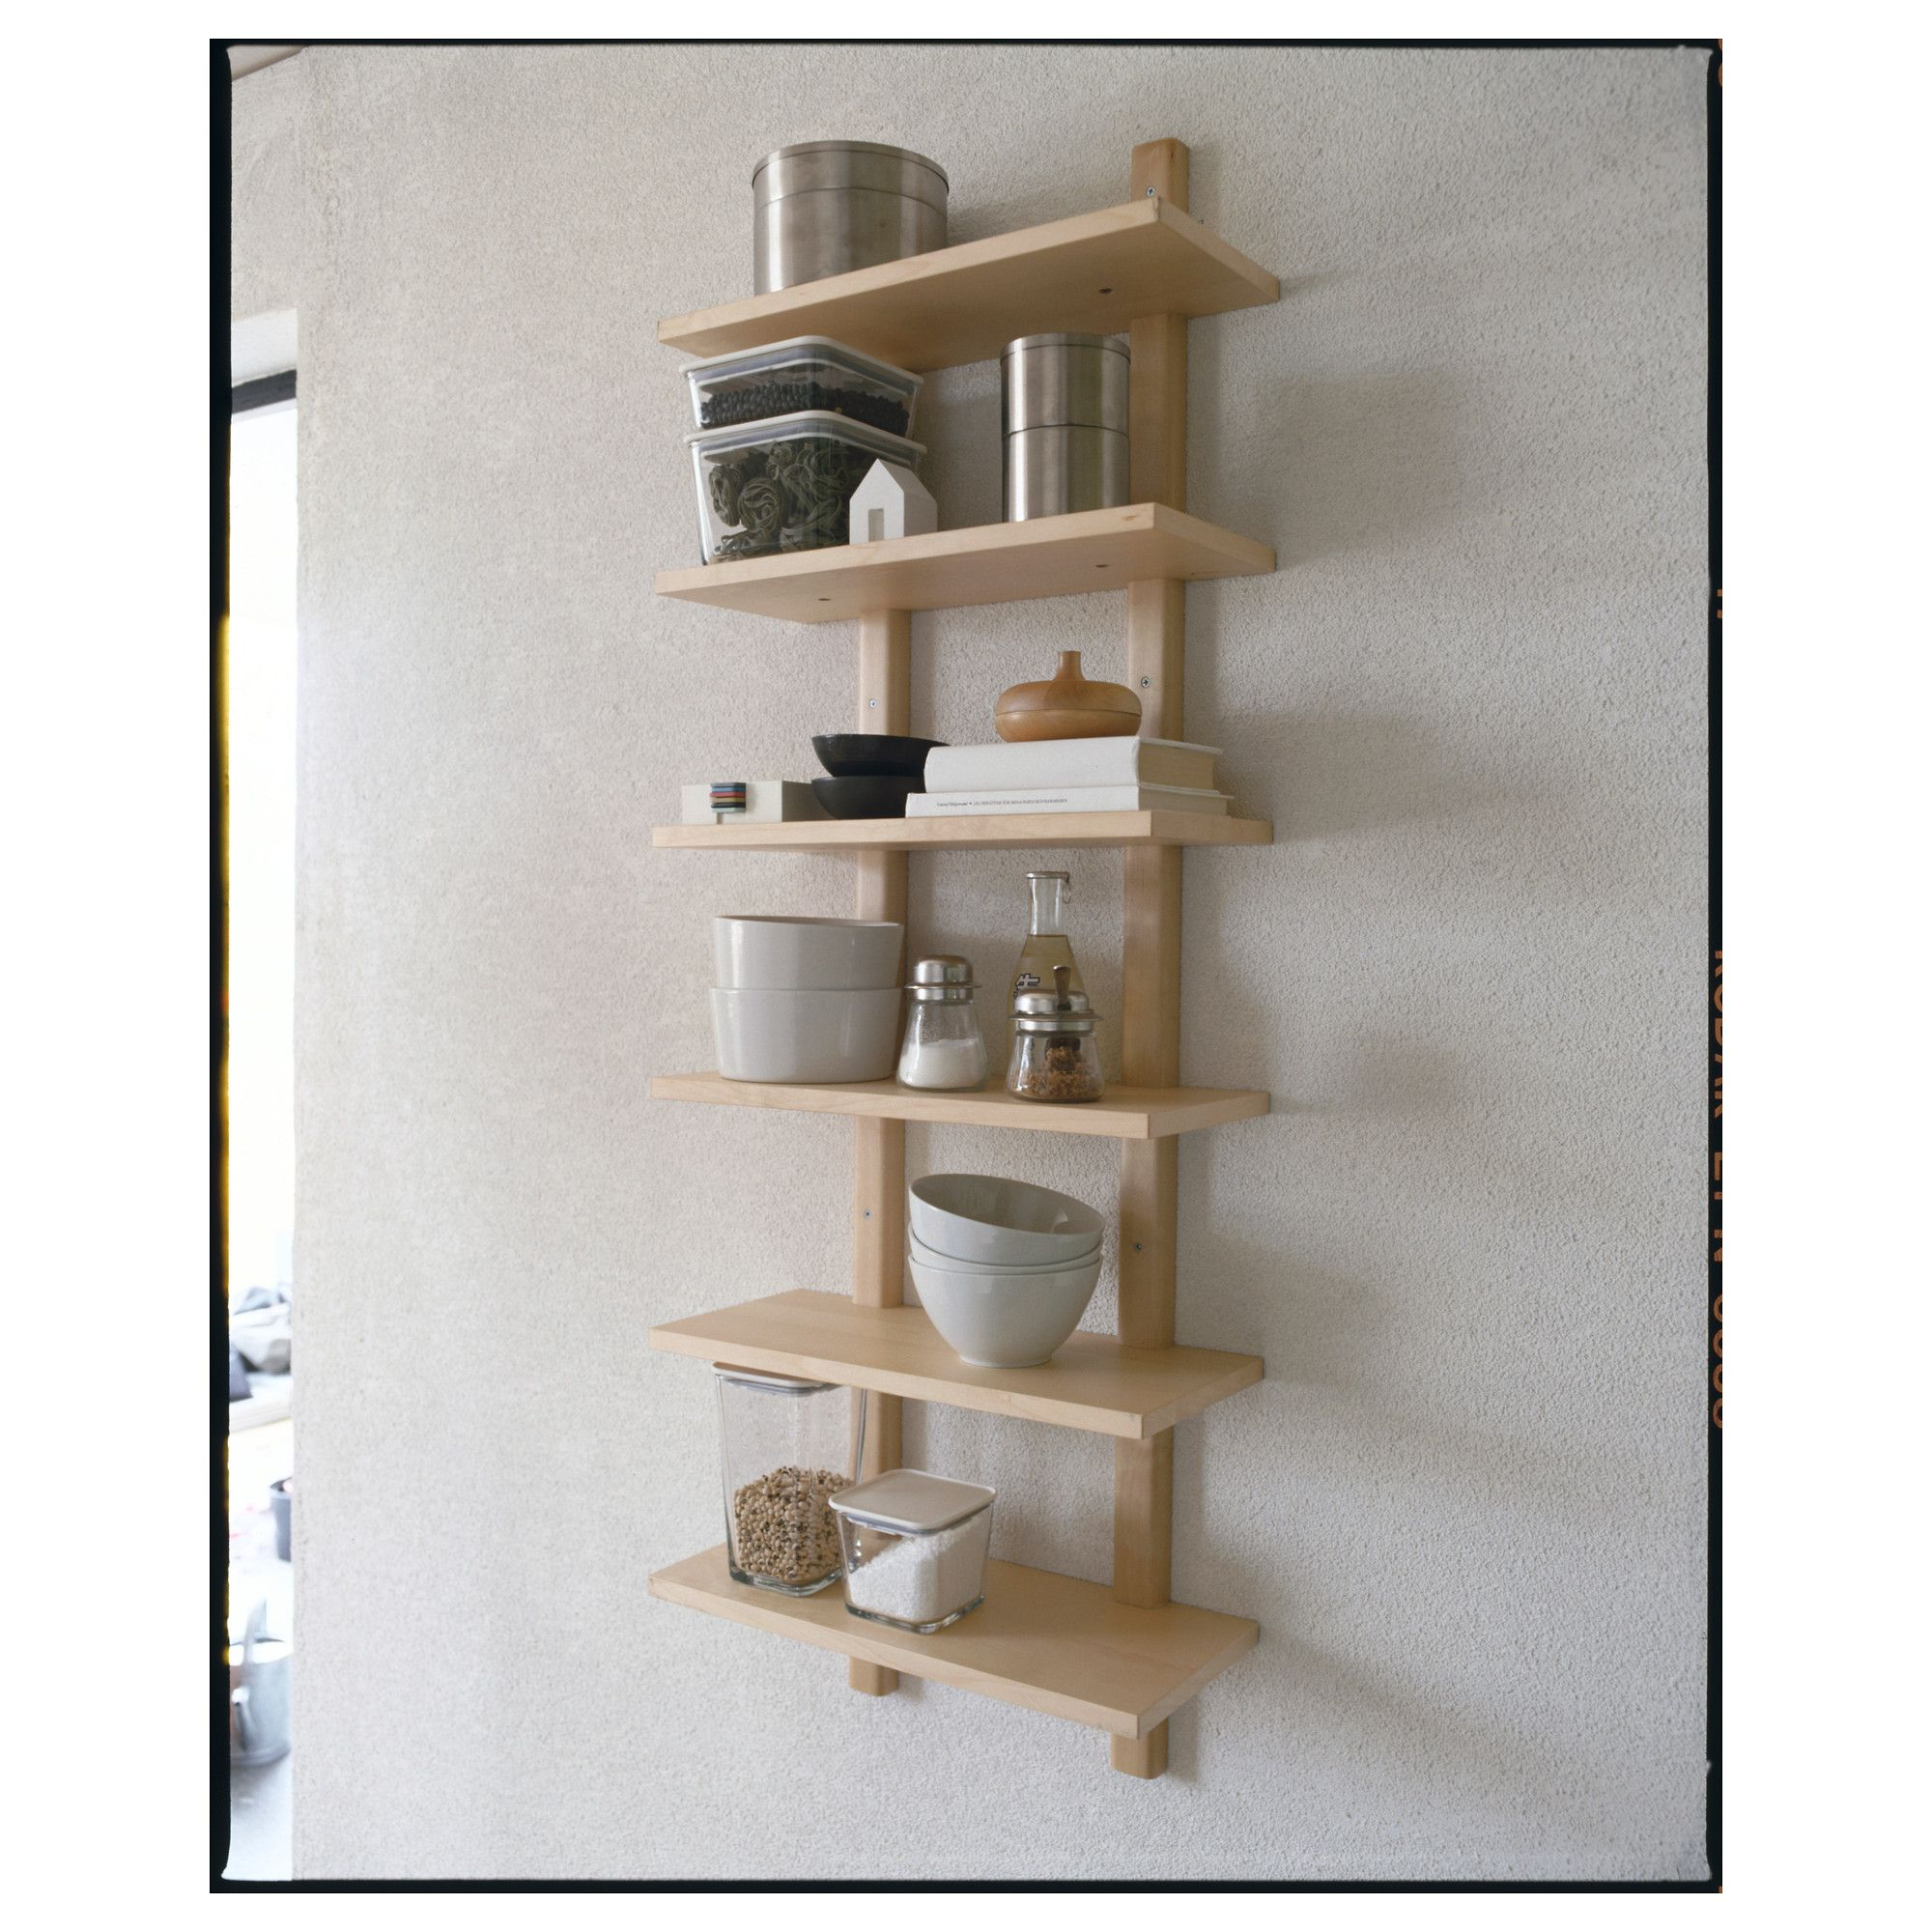 Ikea Värde Küchenregal VÄrde Wall Shelf Birch Ikea Kitchen Wall Shelves